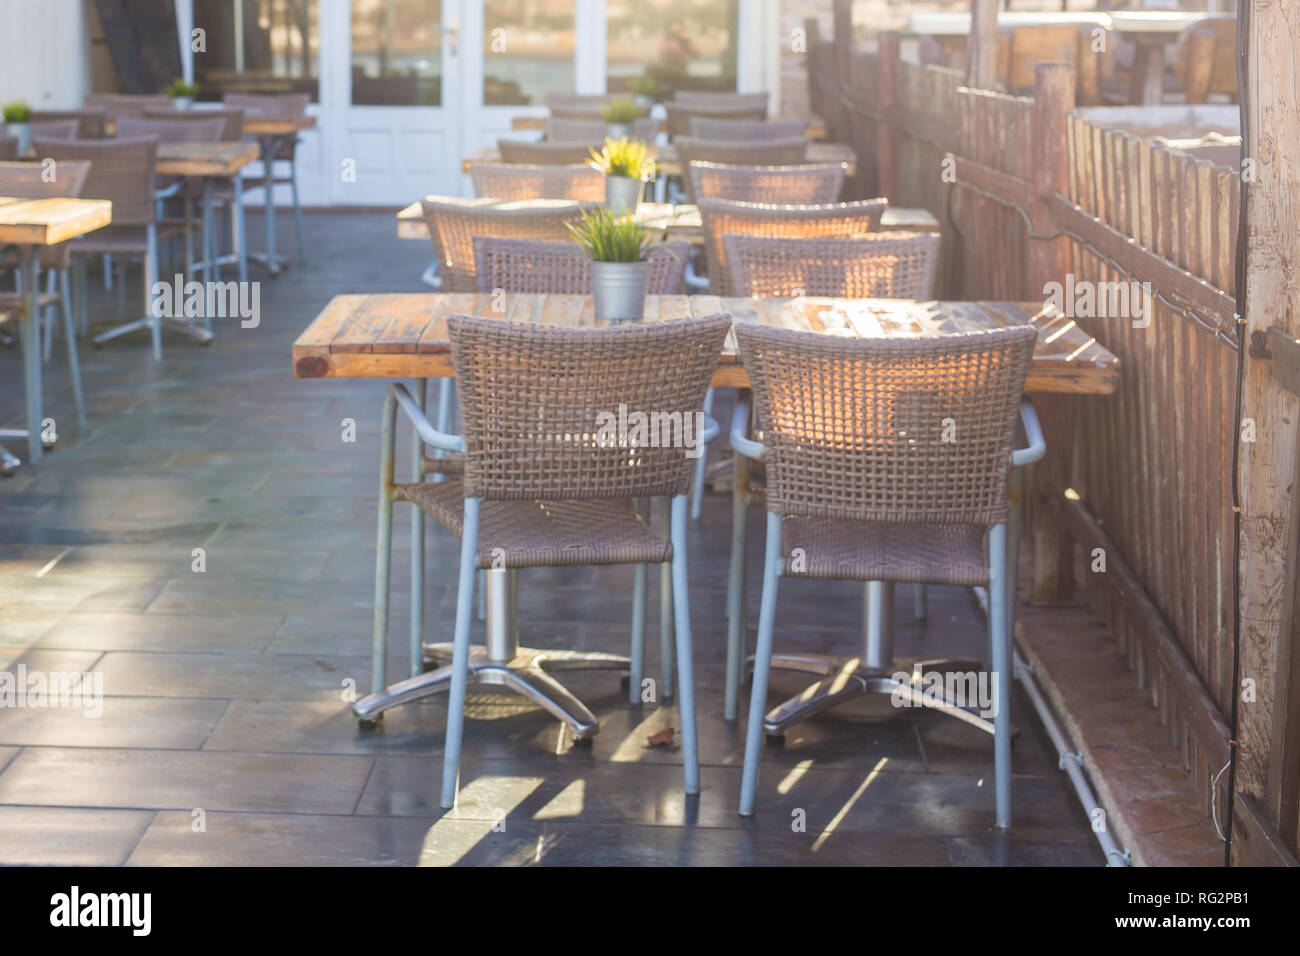 Cafe Coffee Shop Tavern And Restaurant Concept Empty Tables In Between Dining Hours In Europe Town Stock Photo Alamy